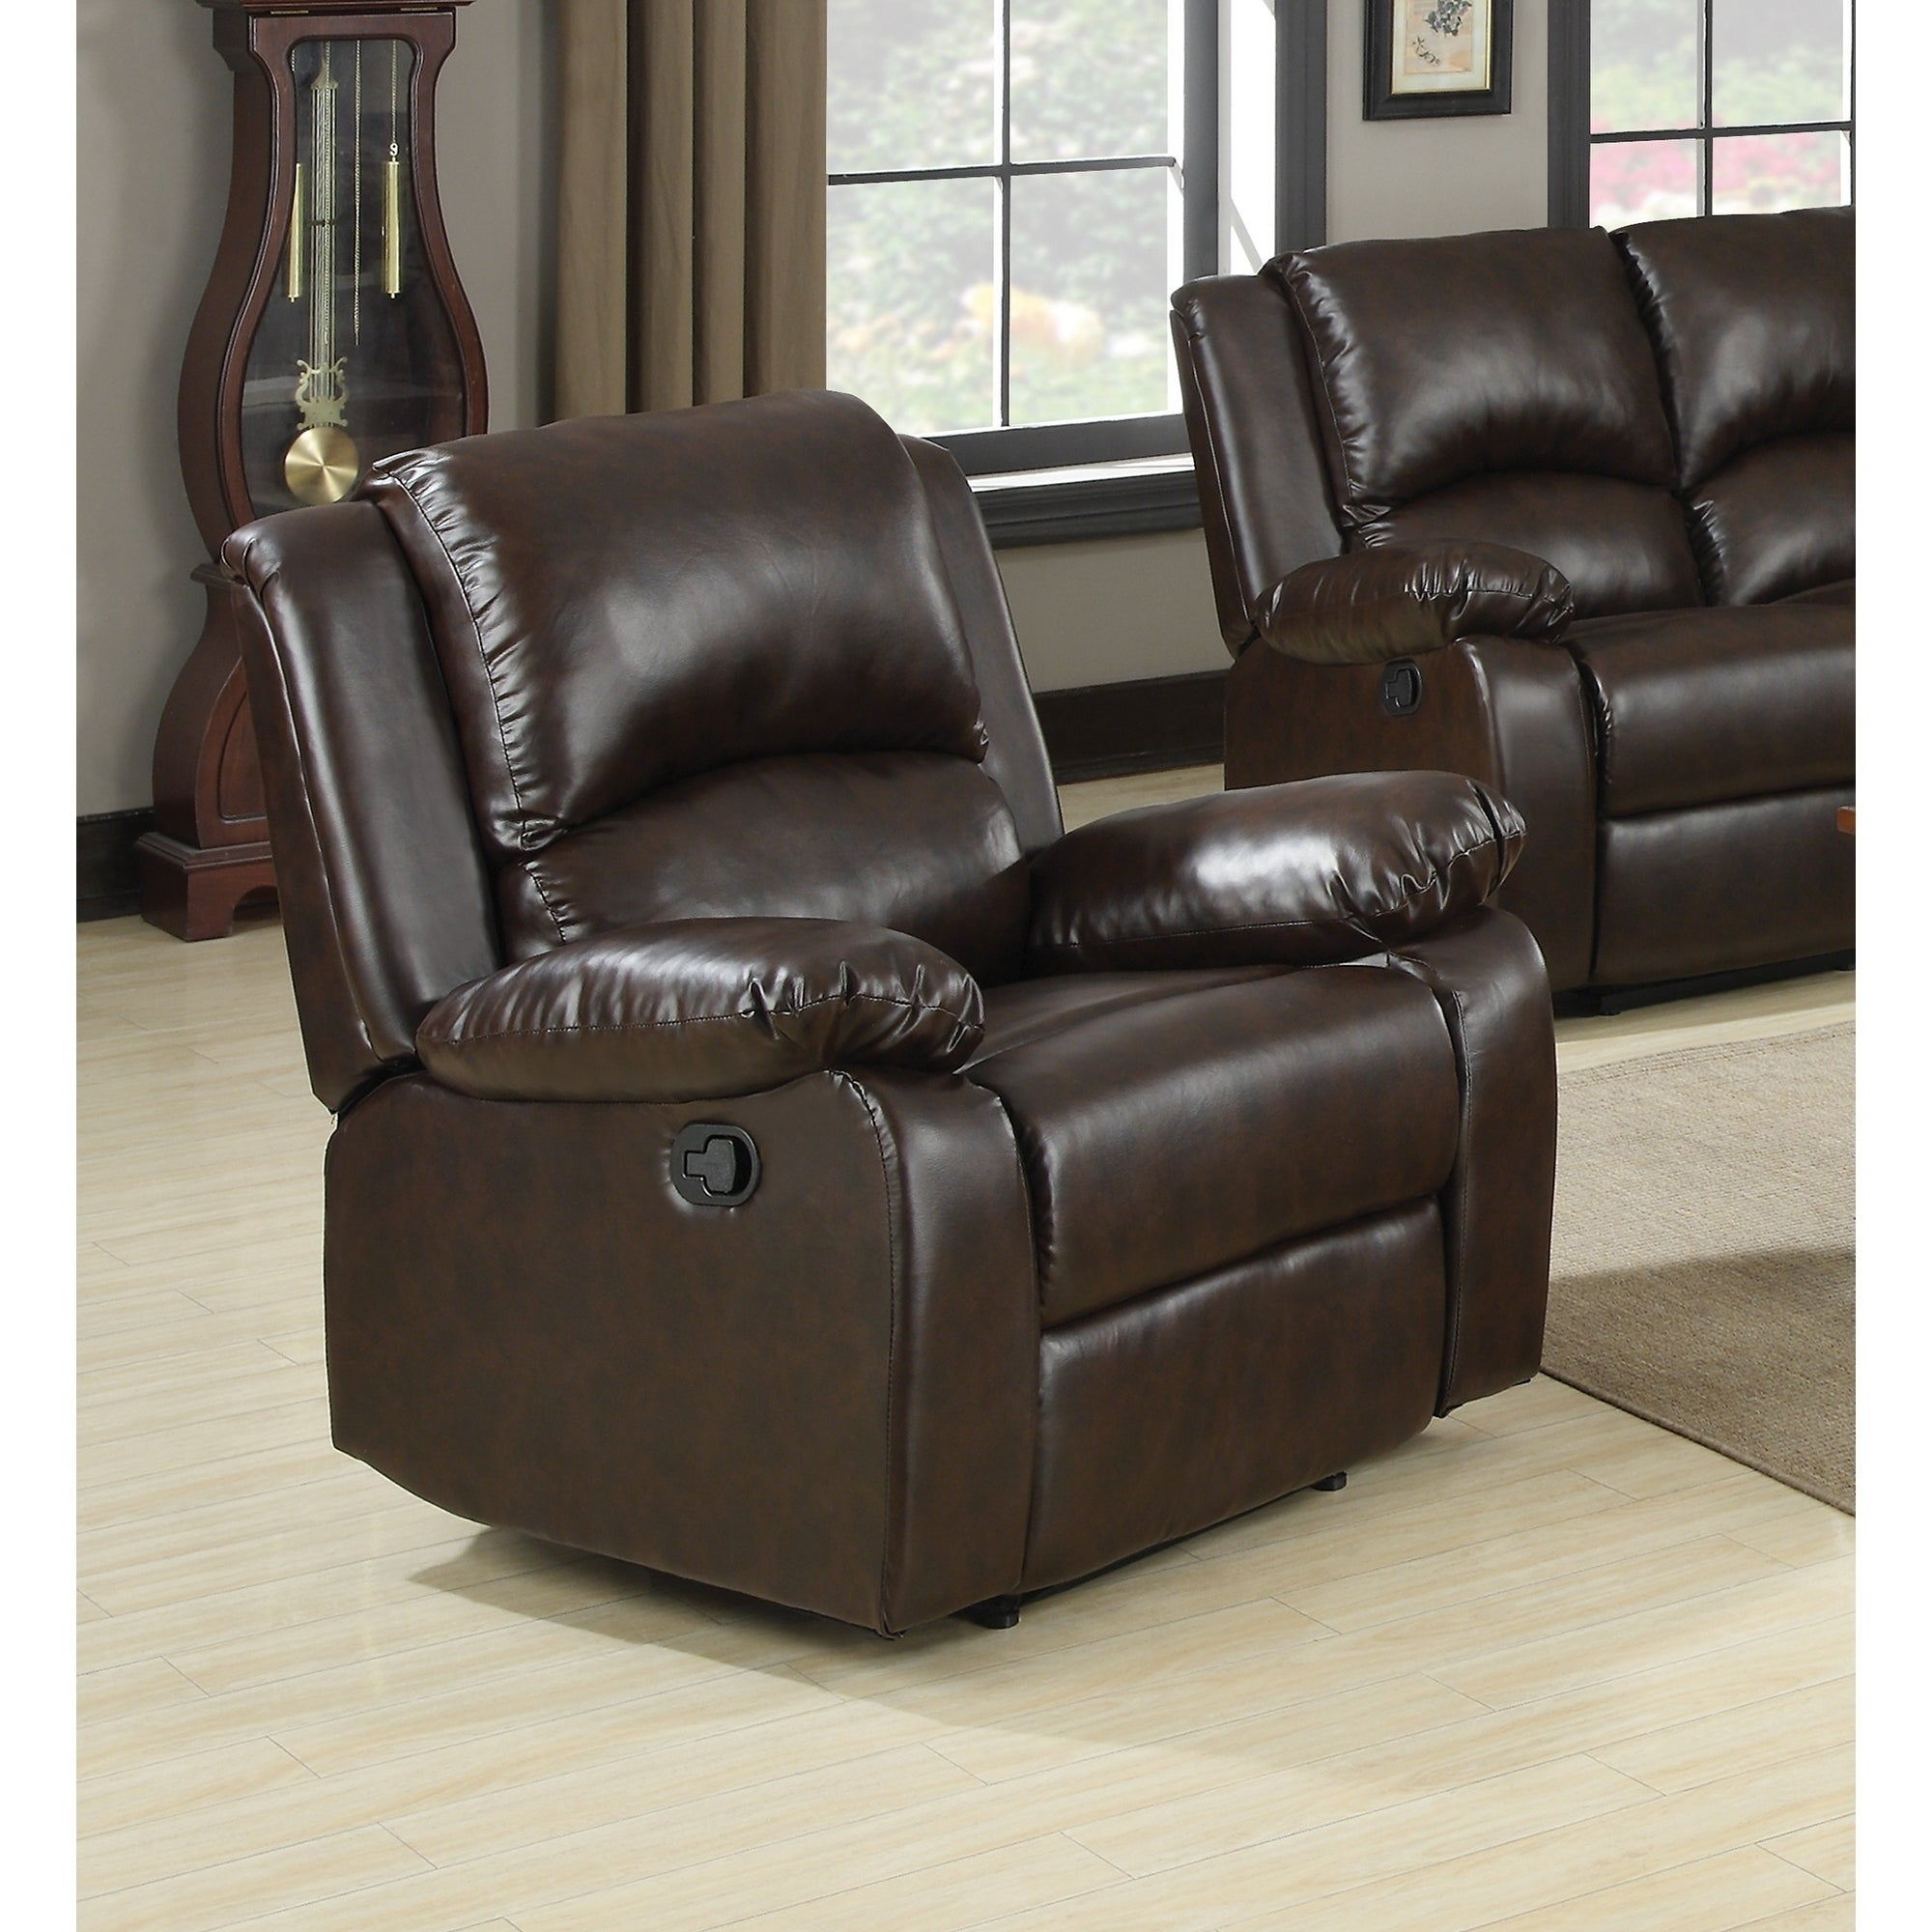 Coaster Furniture Boston Casual Brown Pillow Arms Recliner (As Is Item) (Brown)